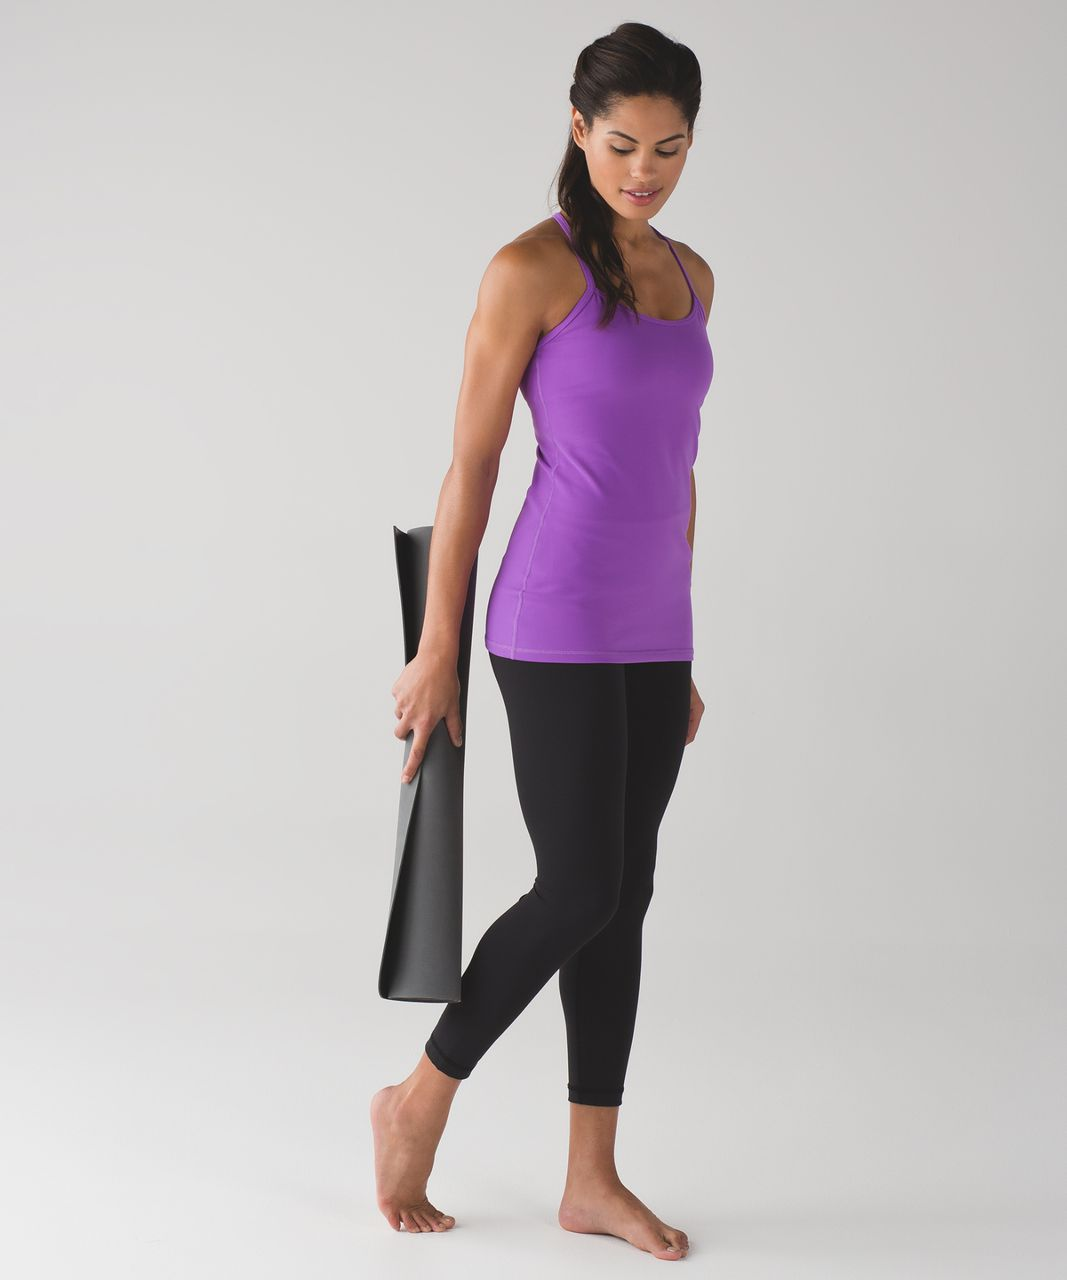 Lululemon Power Y Tank (Luon) - Moonlit Magenta